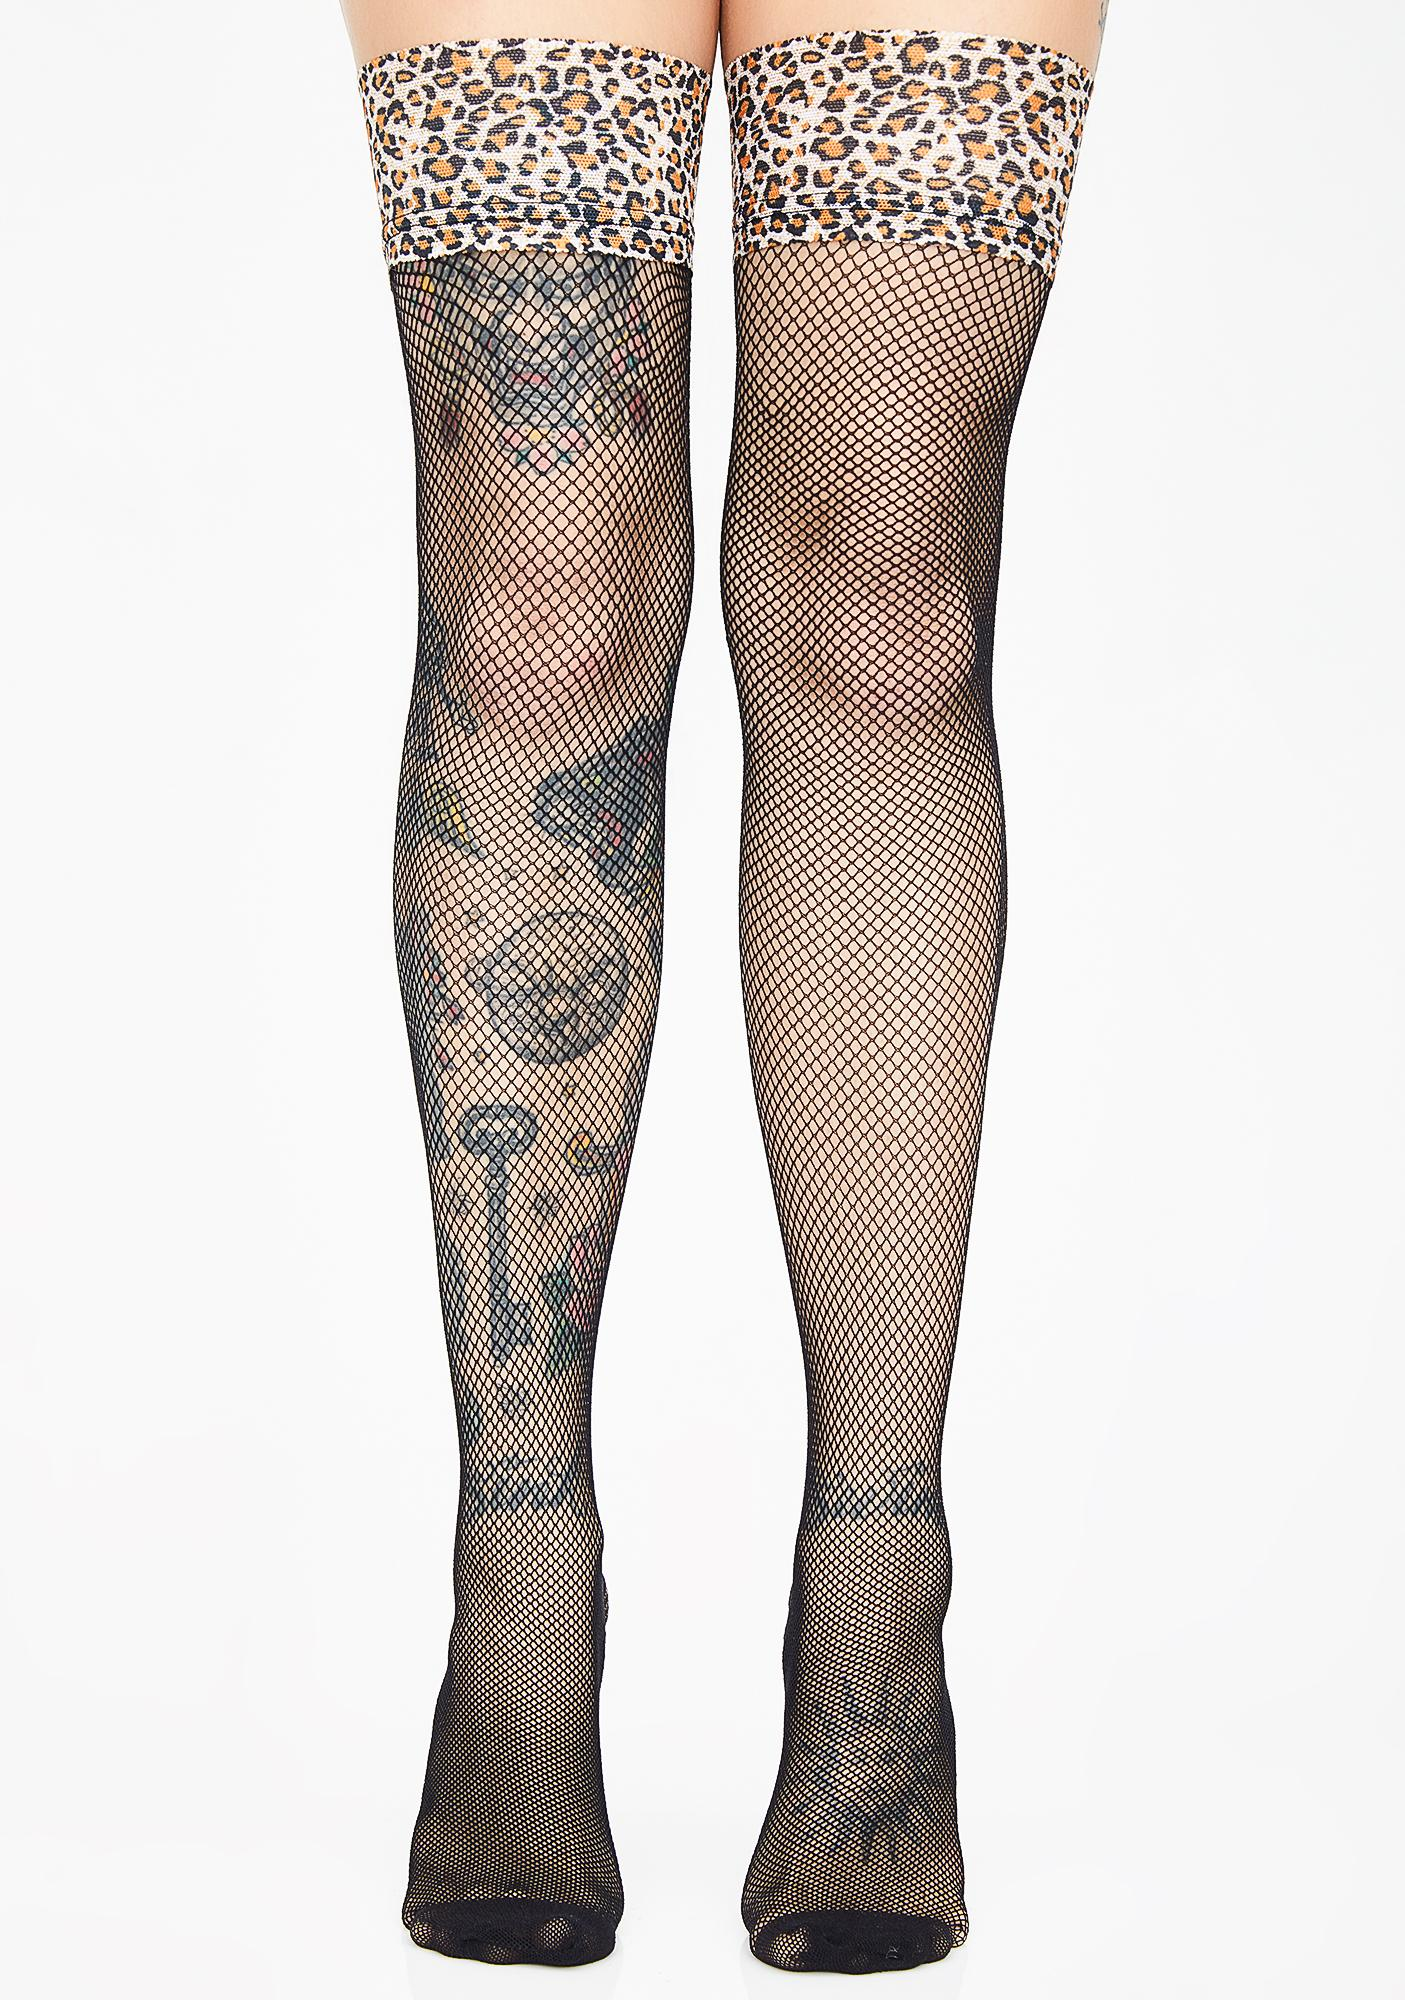 578ec0a5b2f03 Leopard Fishnet Thigh High Stockings | Dolls Kill